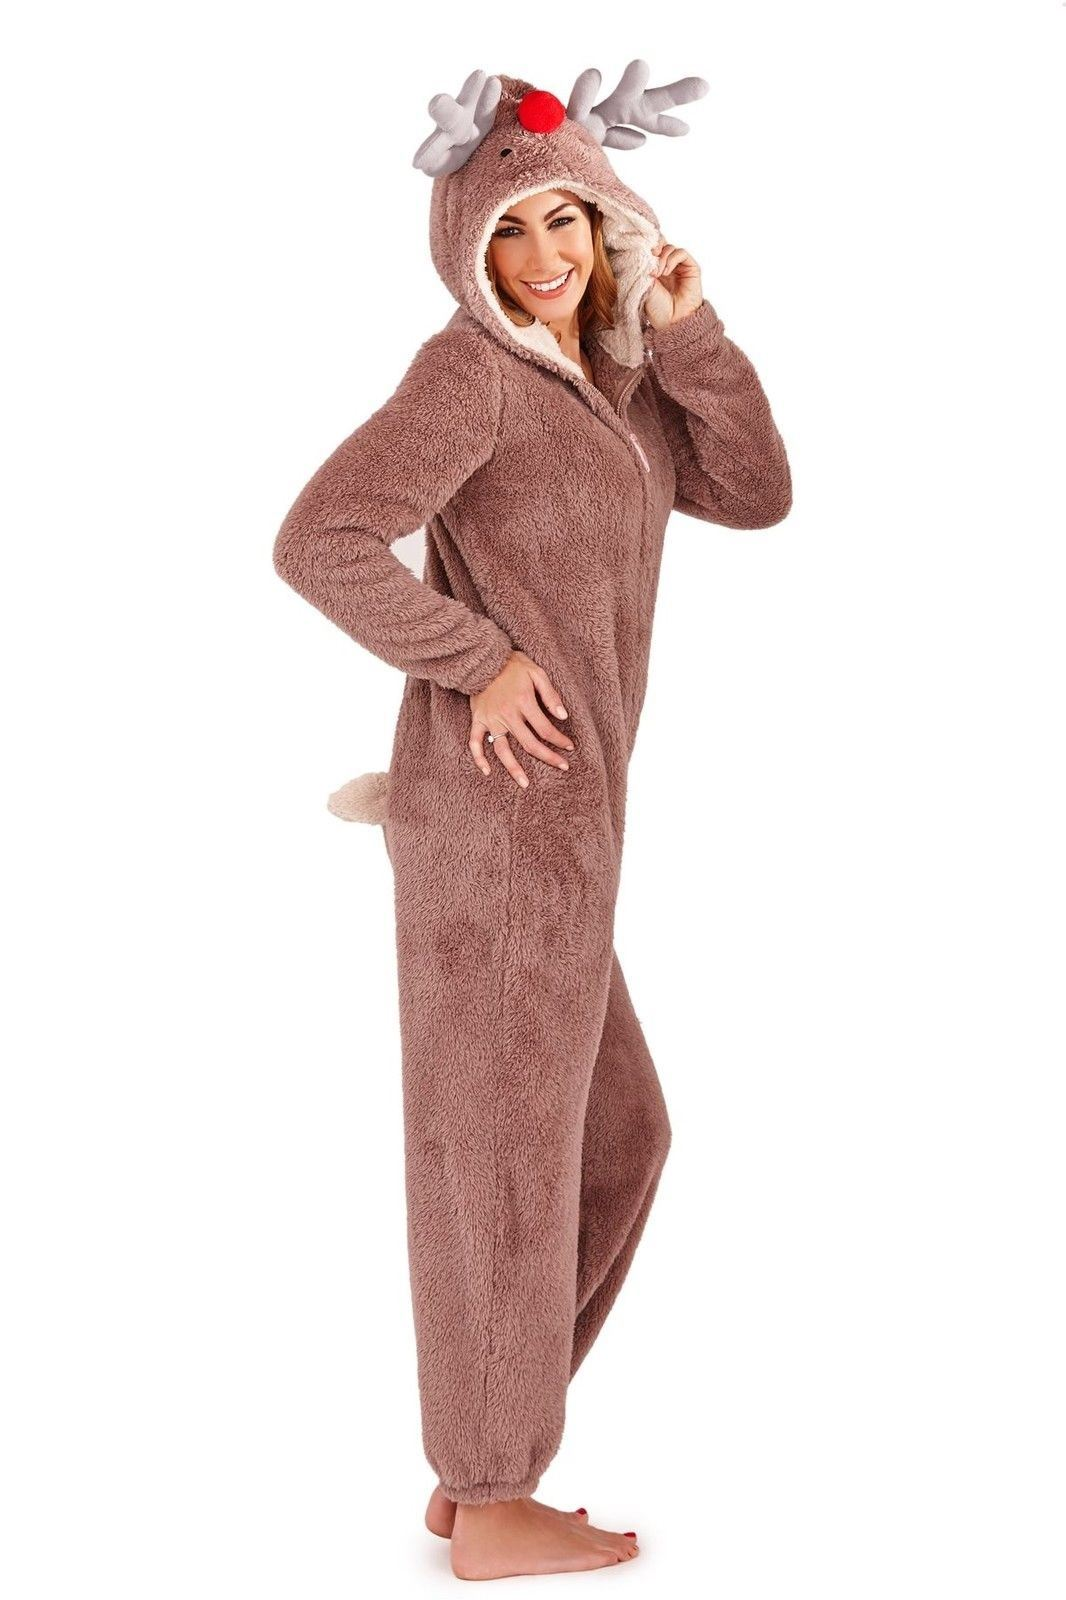 Australias number one onesies online store with a large range of styles and sizes that are high quality, comfy and fun at great prices for kids and adults! Aust.